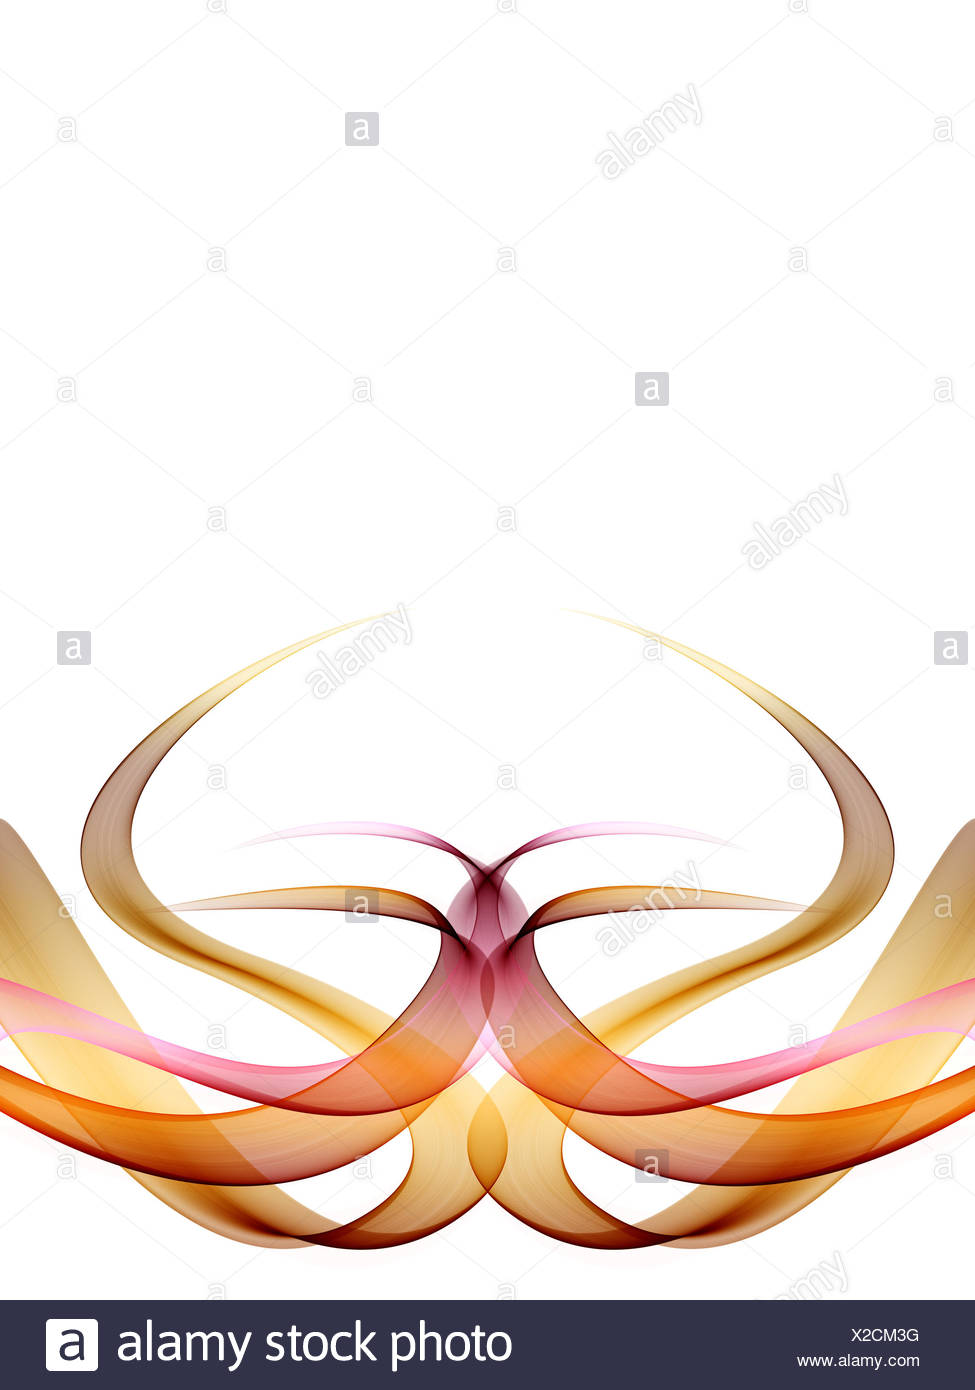 Progression abstract design Photo Stock